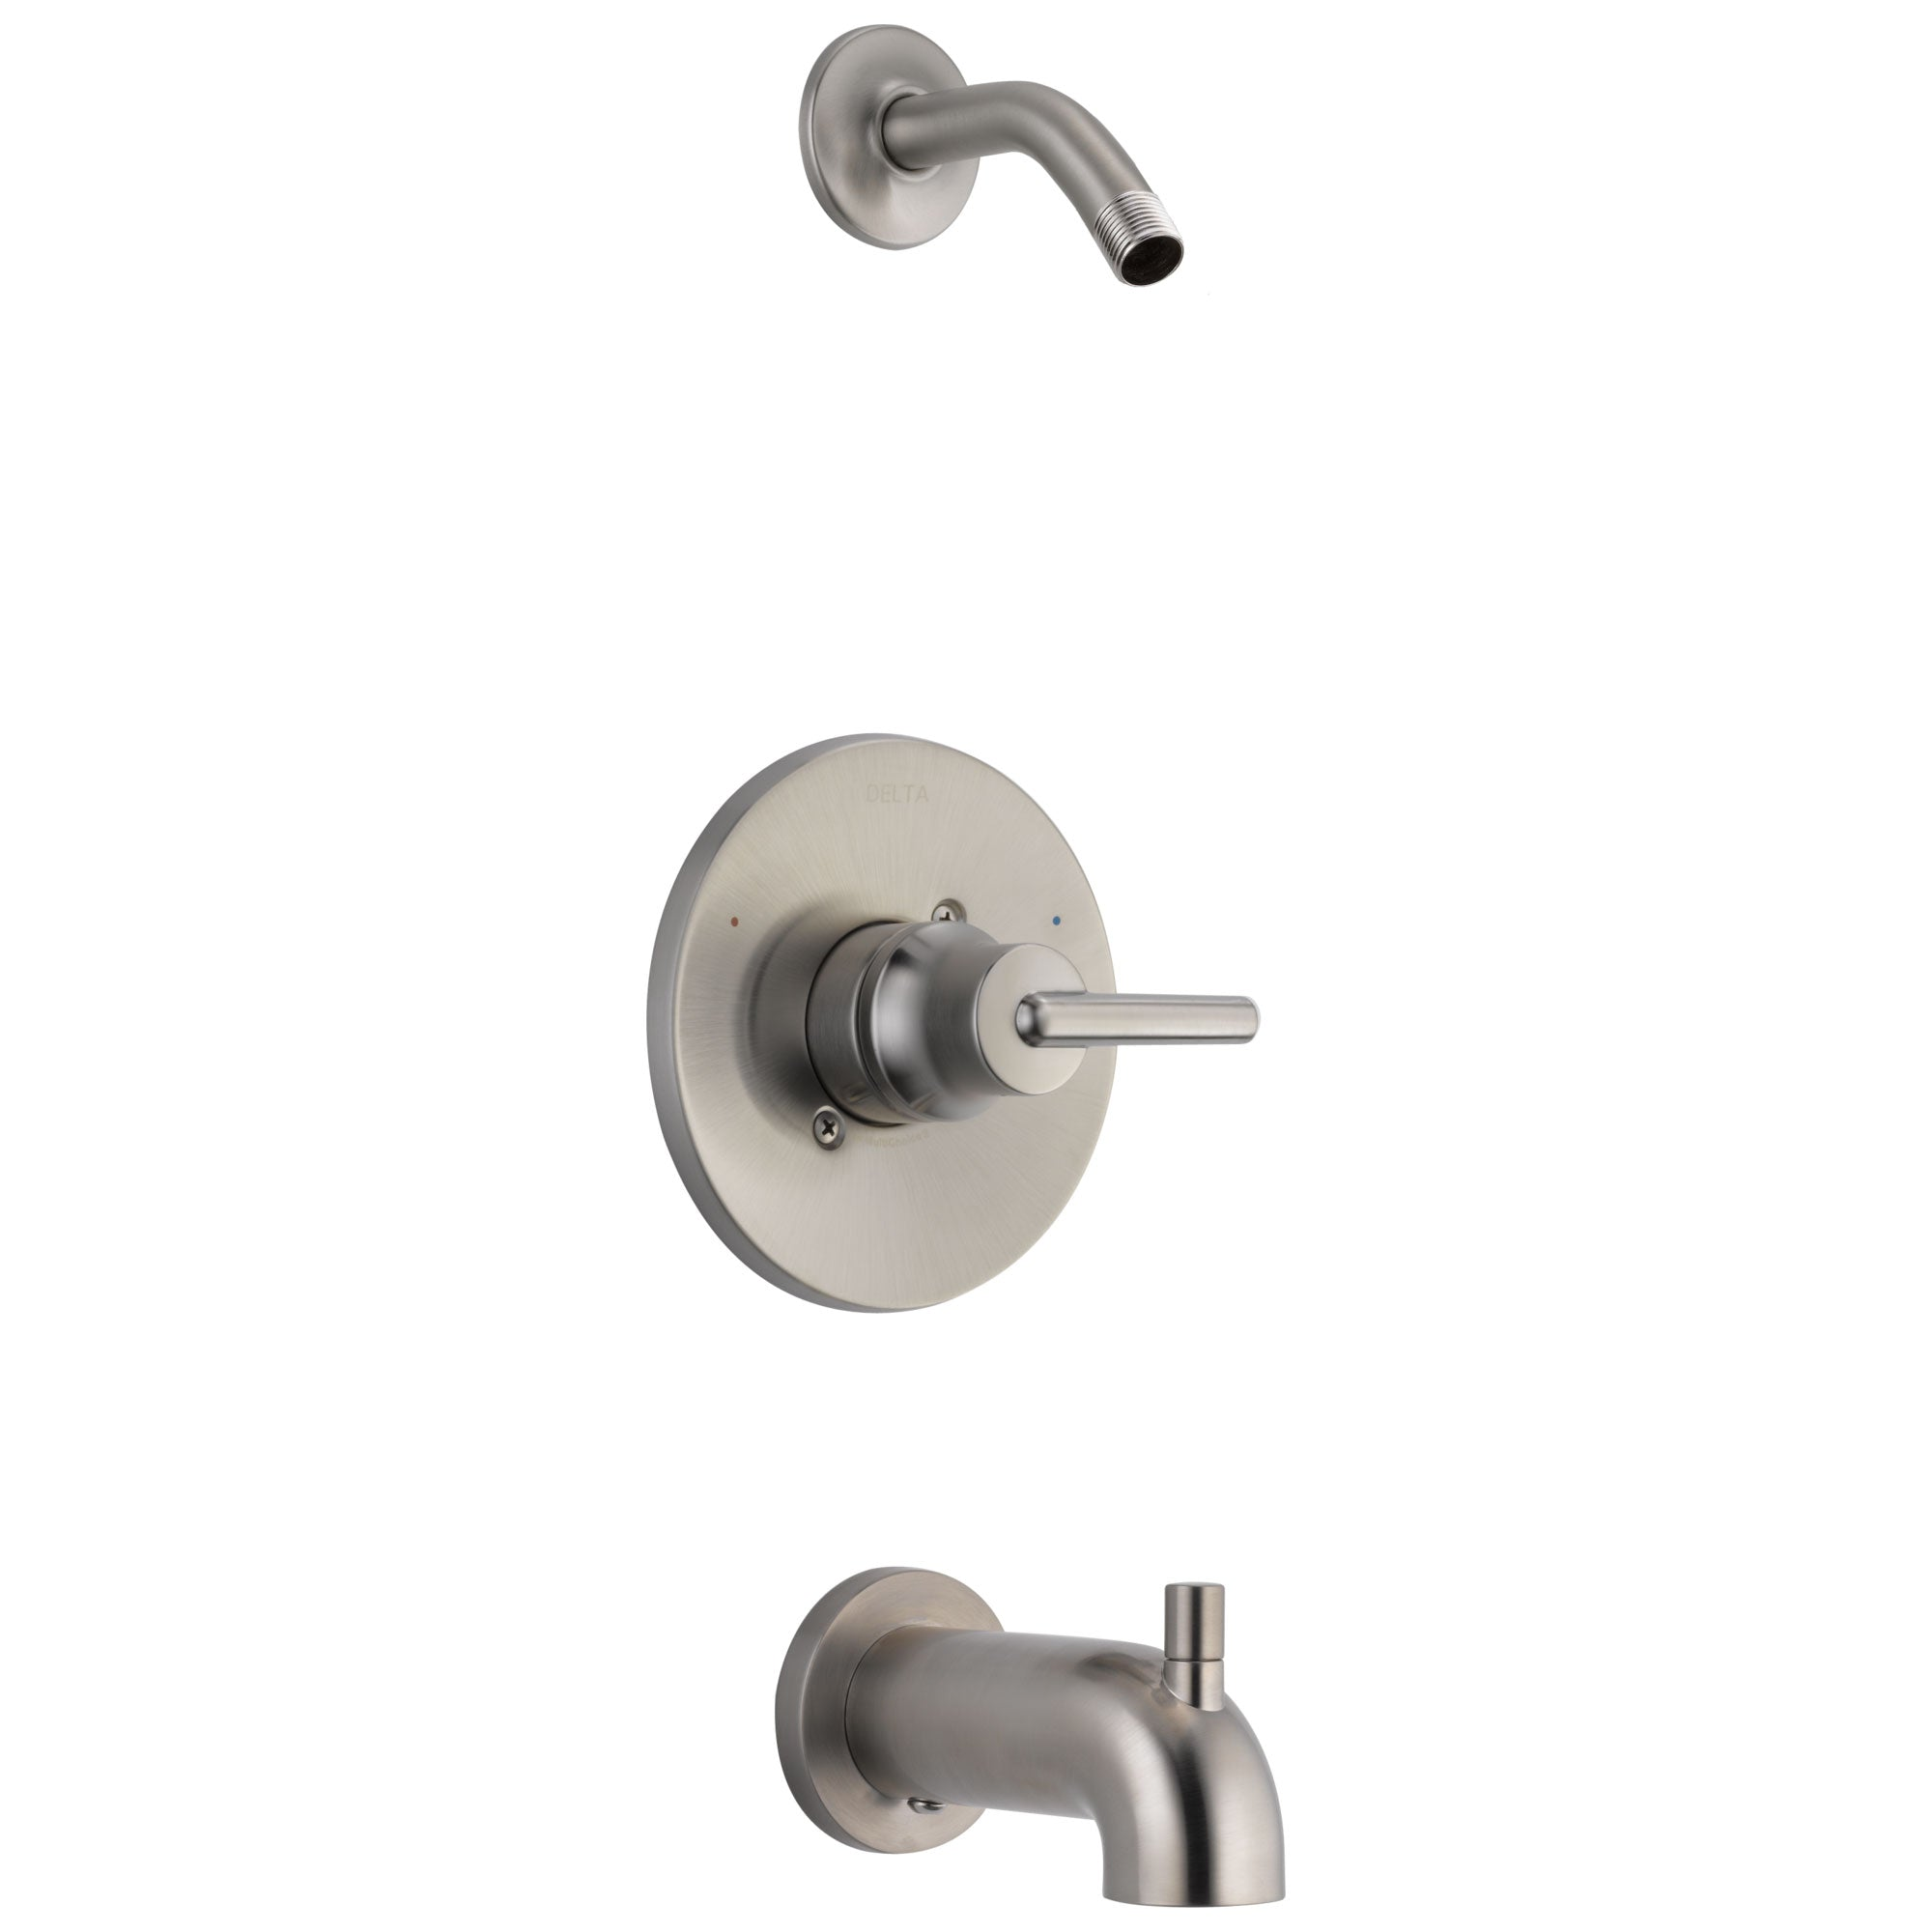 Delta Trinsic Collection Stainless Steel Finish Modern Lever Tub and Shower Combination Faucet Trim - Less Showerhead Includes Valve without Stops D2395V